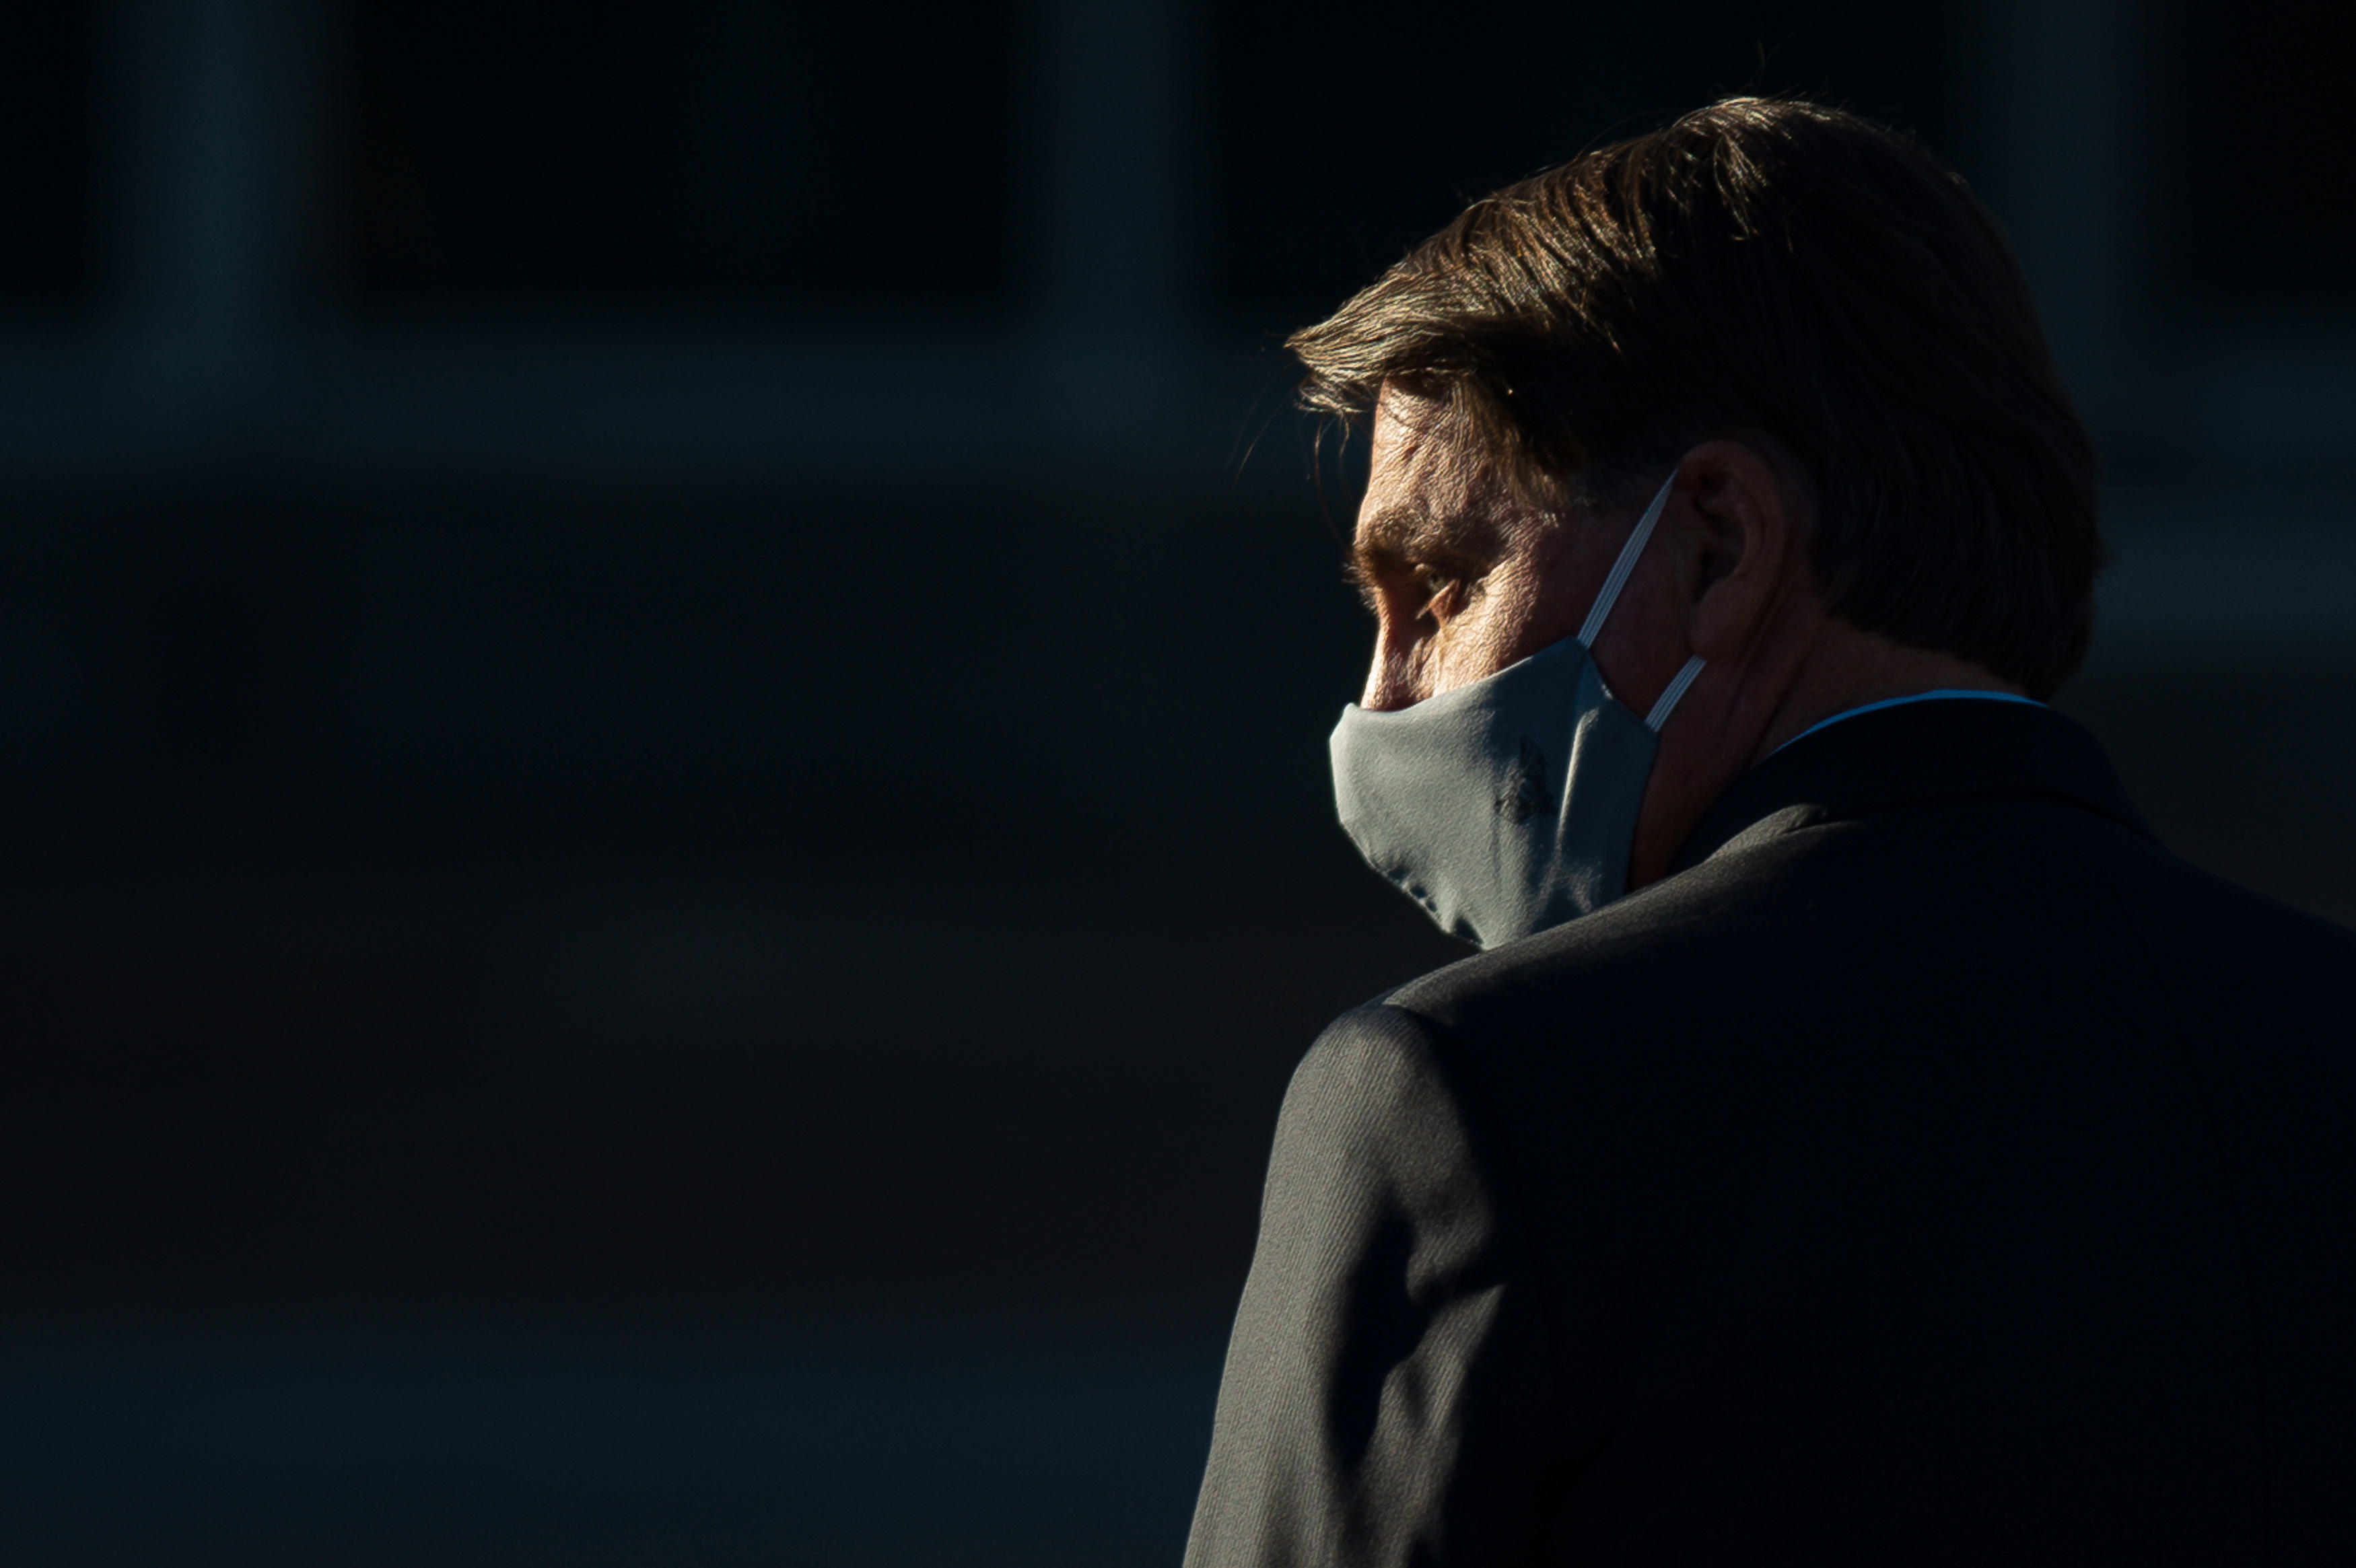 Brazil's Bolsonaro tested for coronavirus after feeling unwell, reporting a high temperature